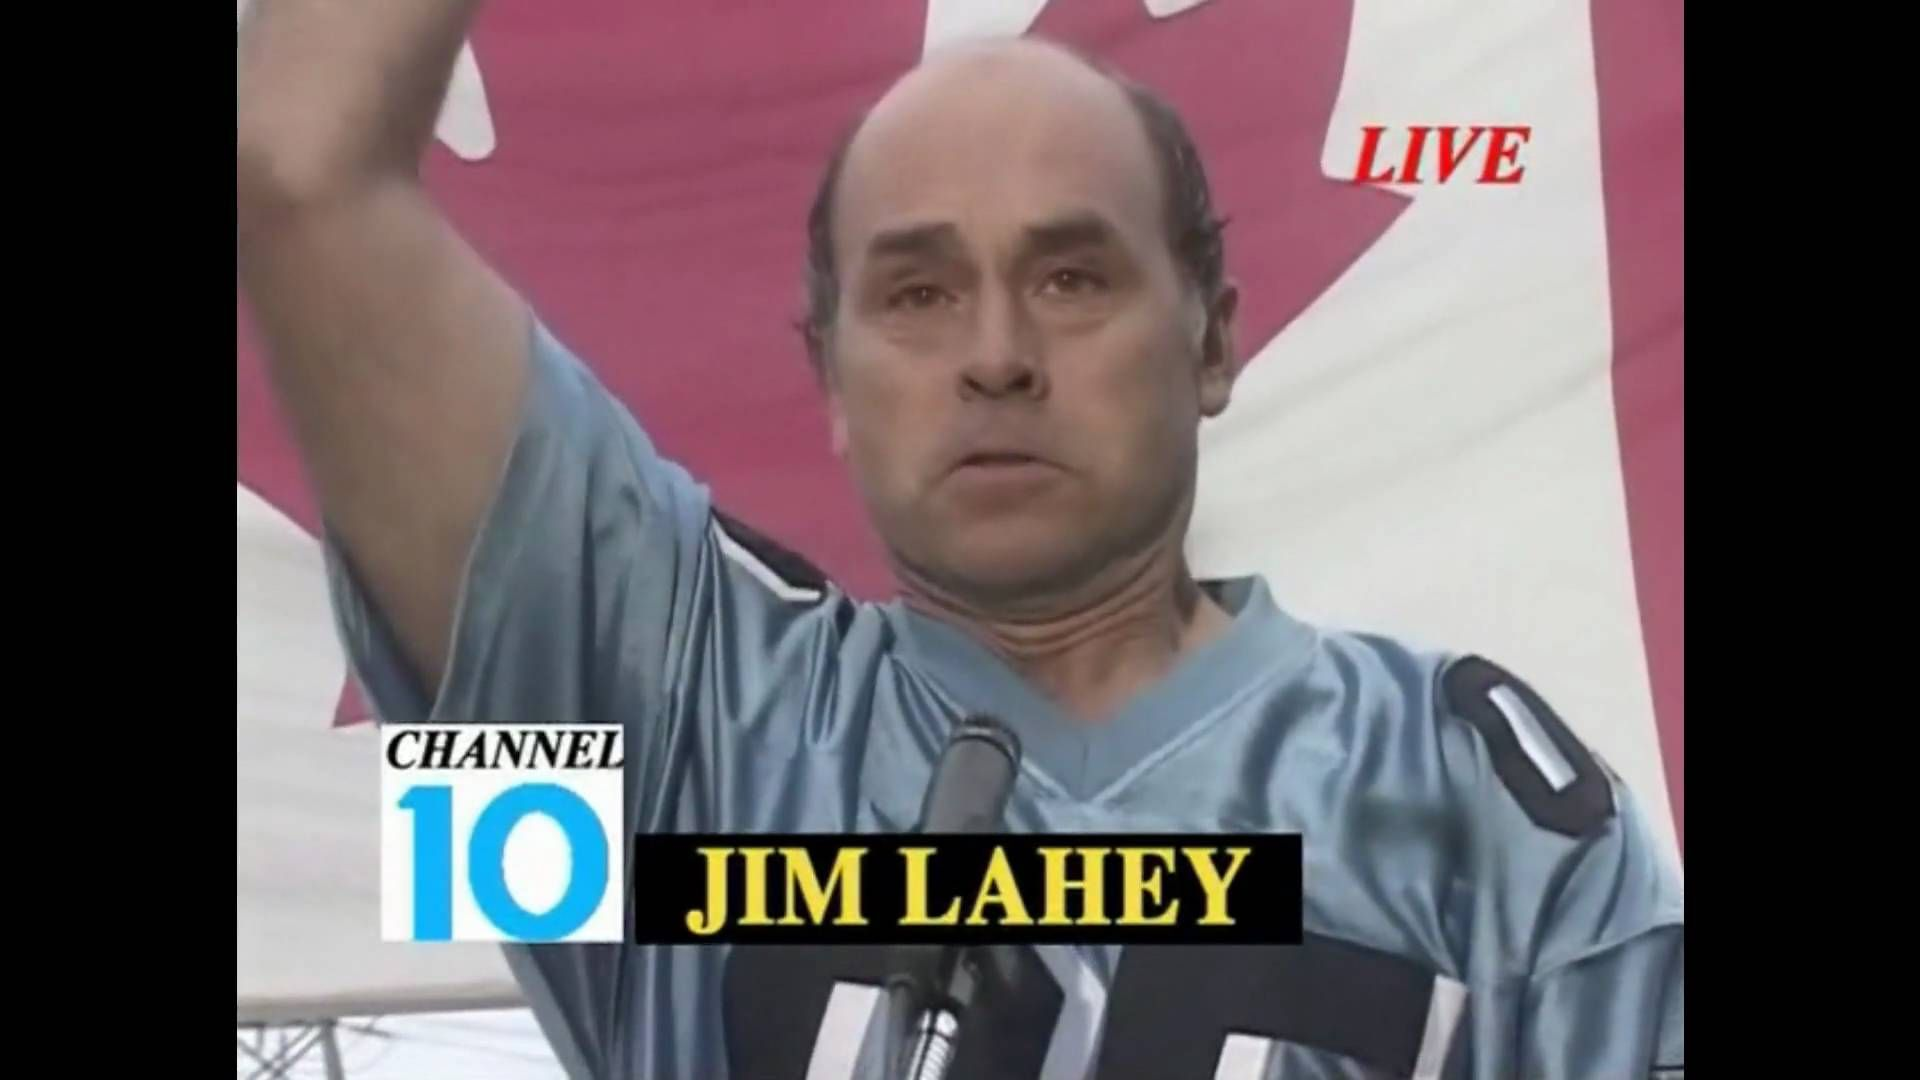 Pin On Mr Lahey I Of These Nights